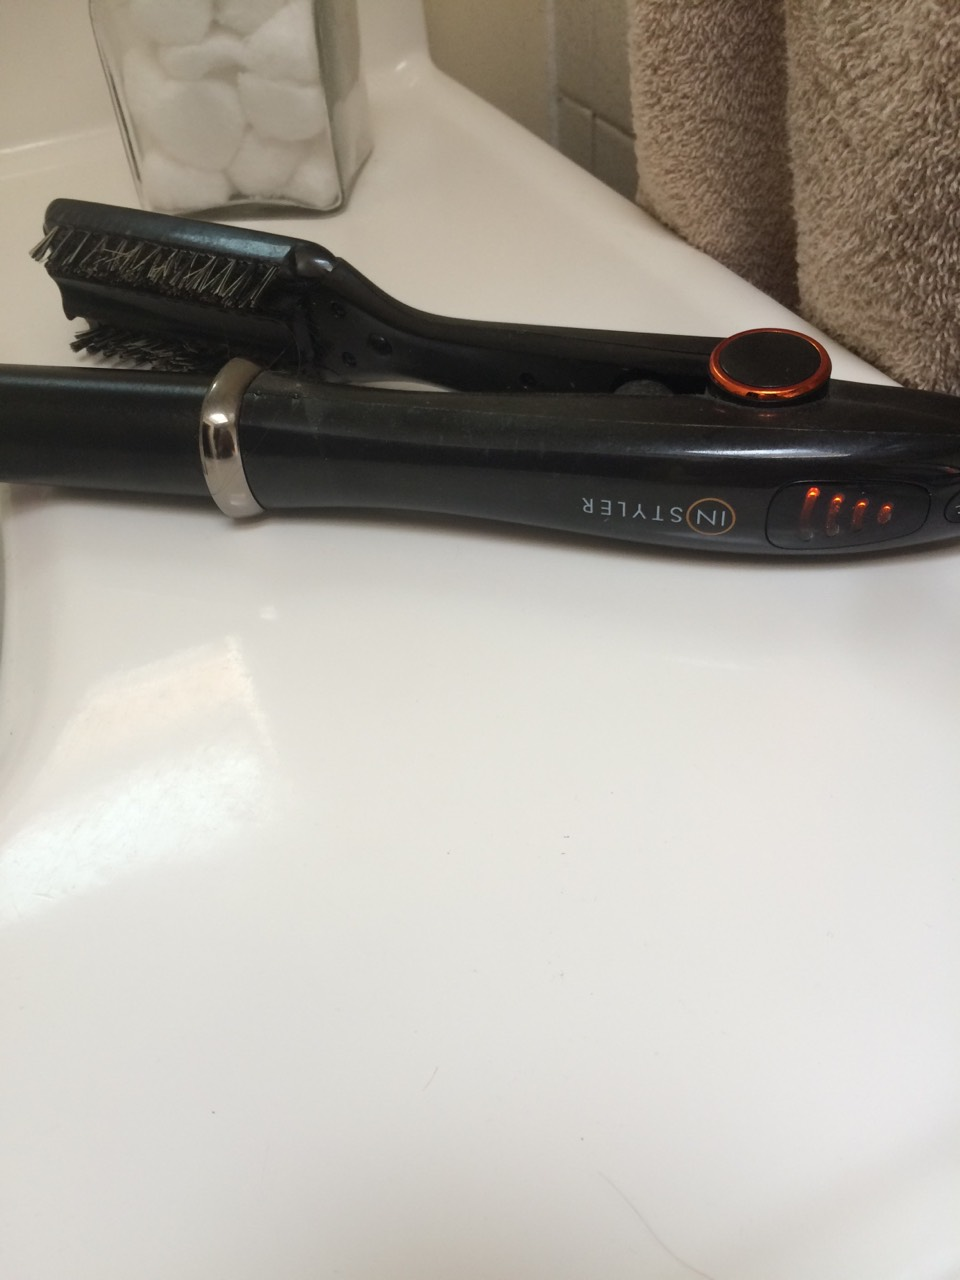 Plug in your instyler and let it heat up